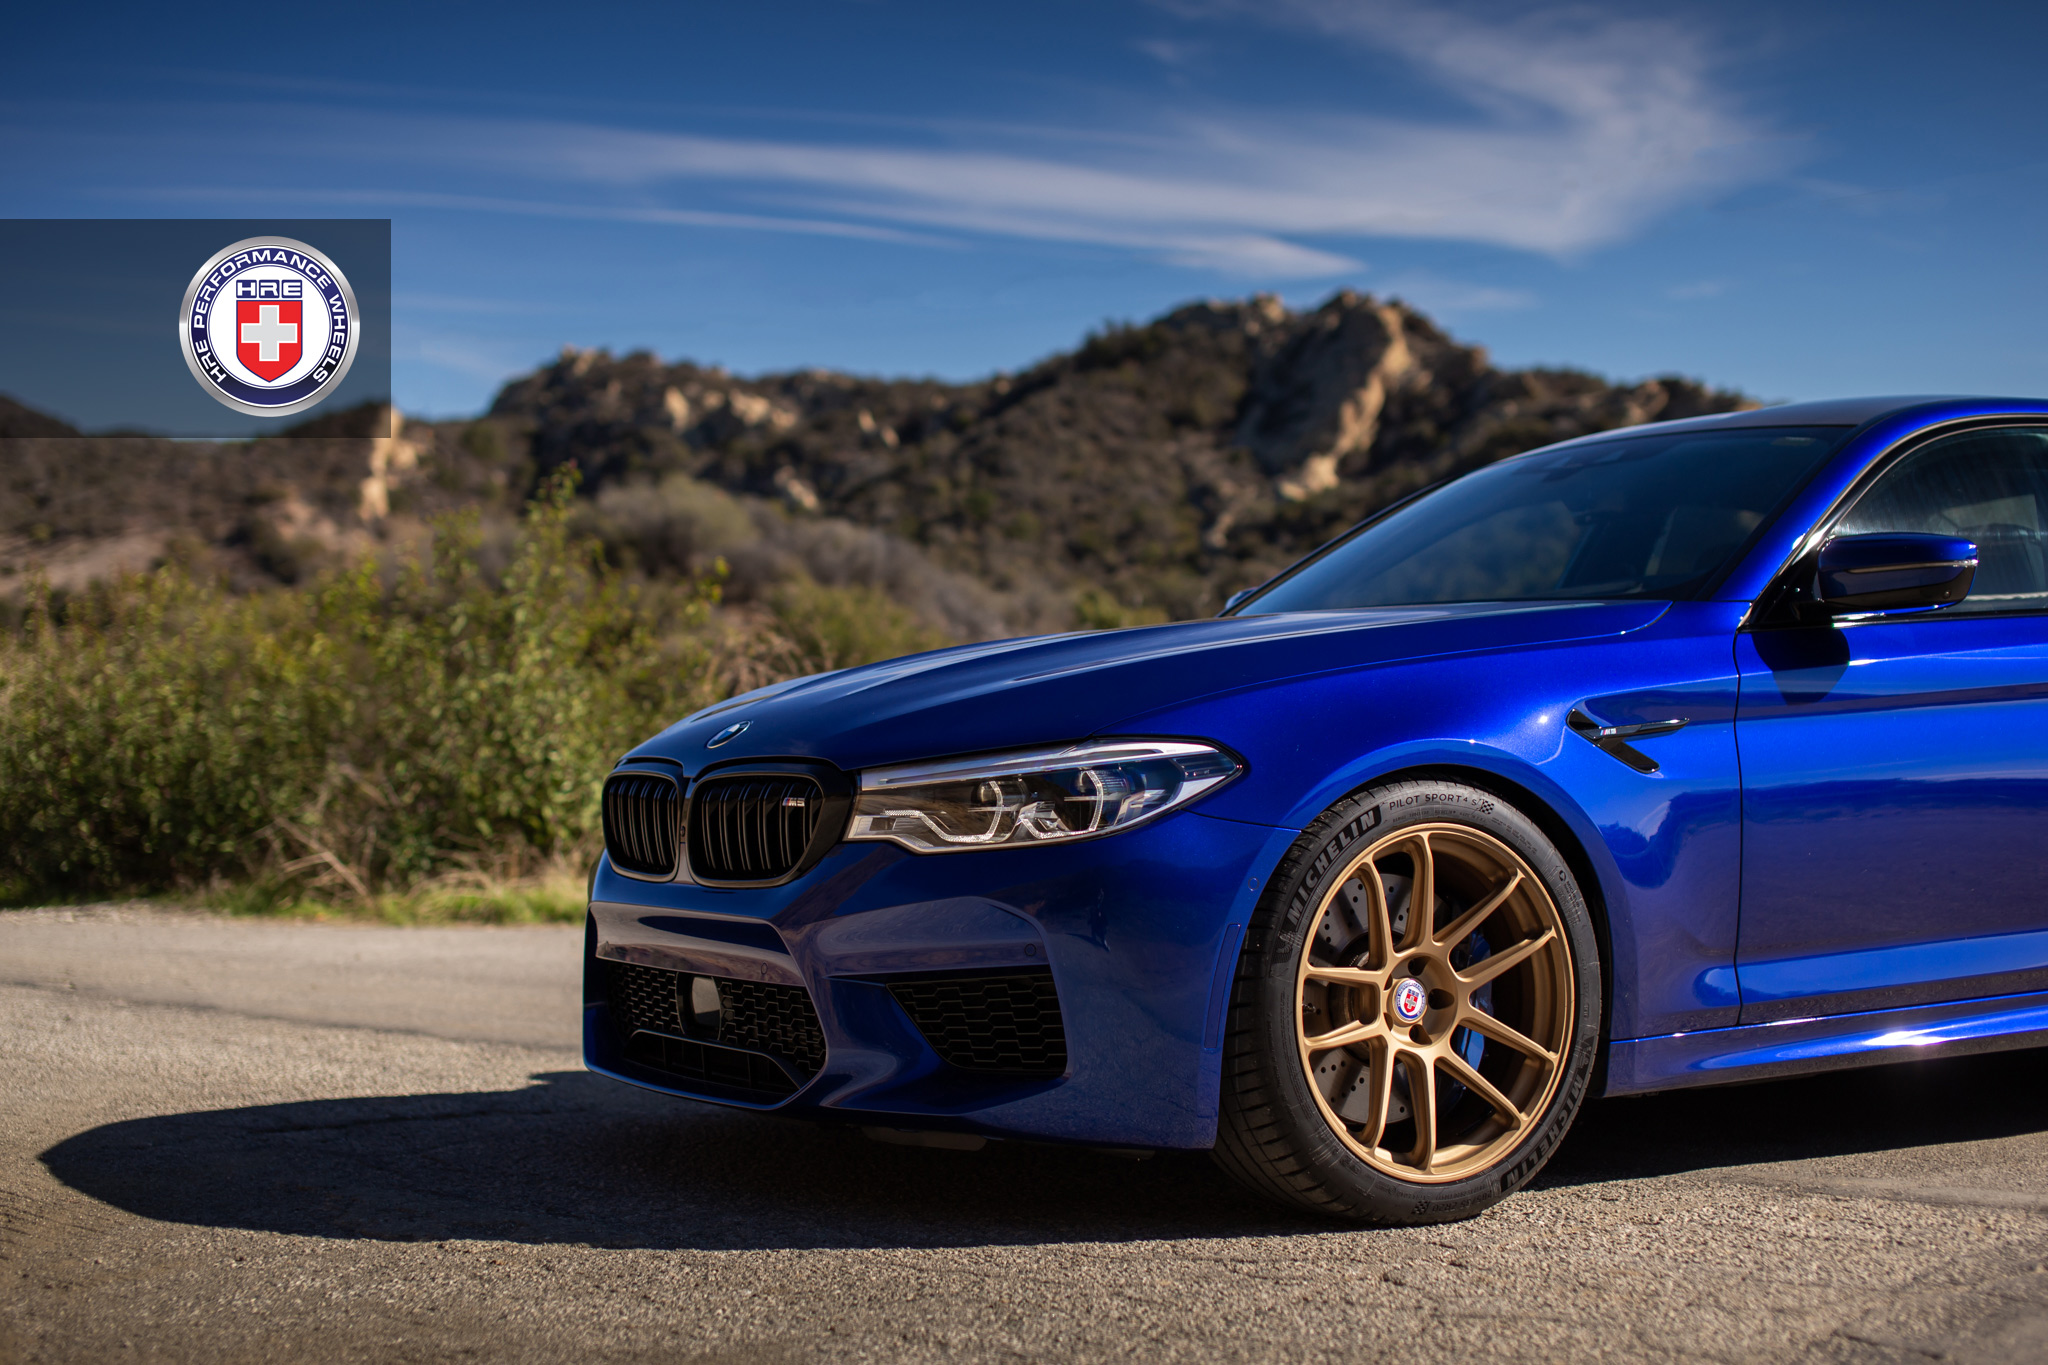 San Marino Blue Bmw M5 With Hre Rc104 Wheels In Satin Gold